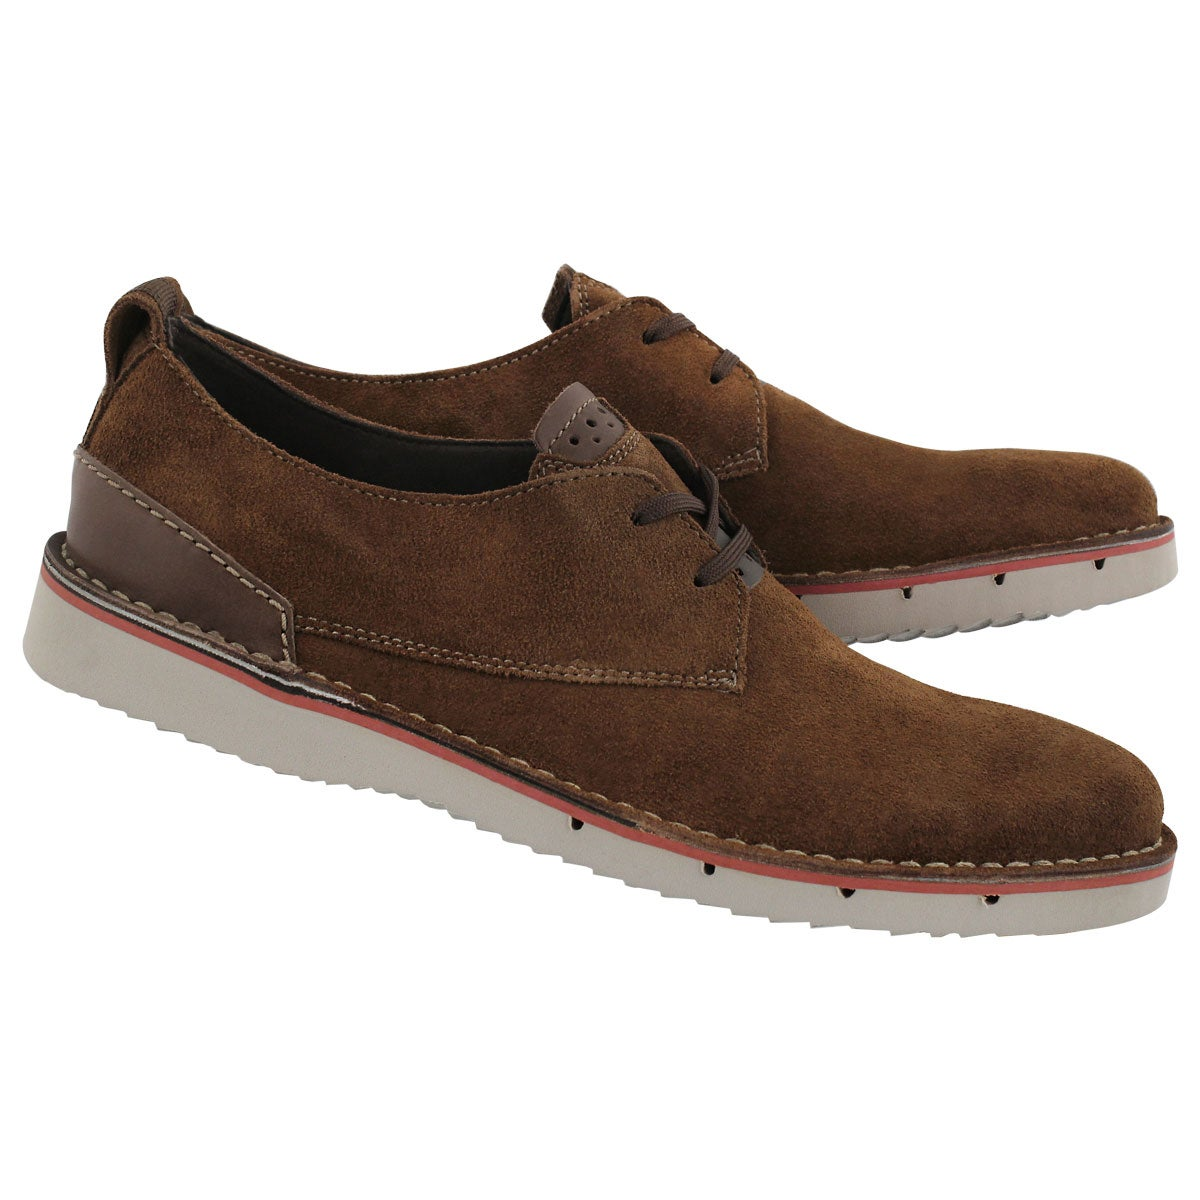 Mns Capler Plain brown casual oxford